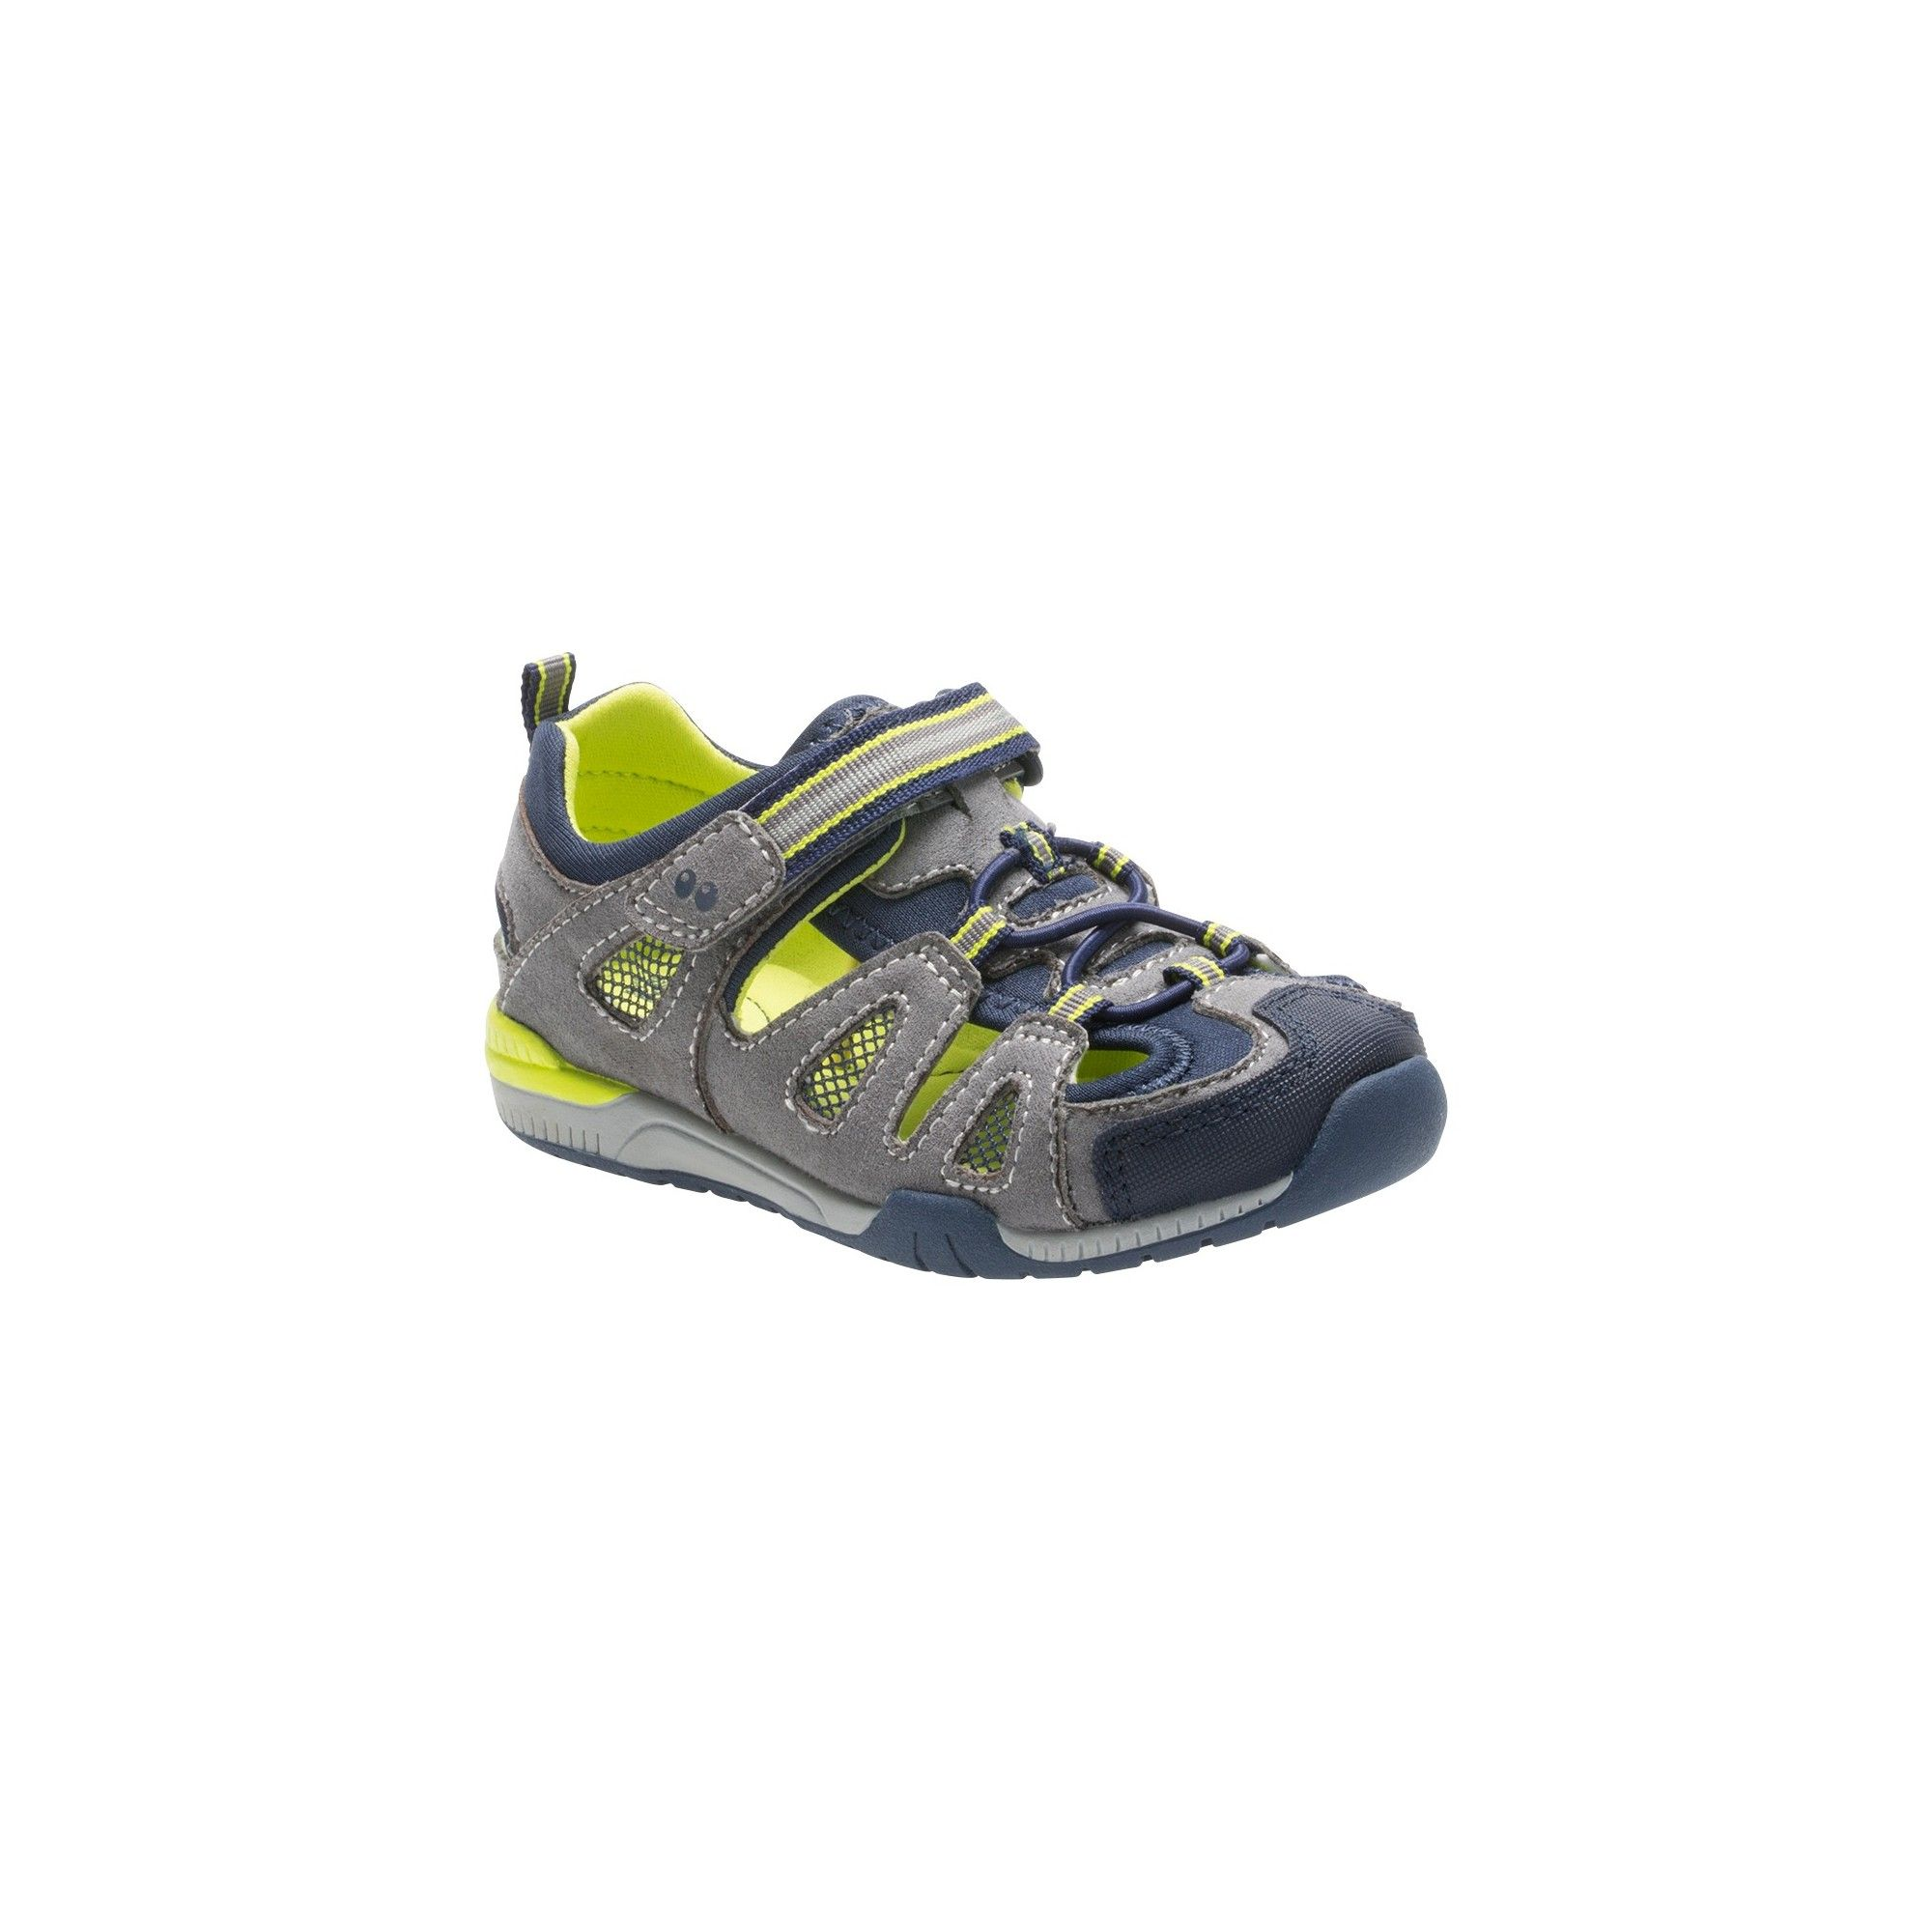 Toddler Boys Surprize by Stride Rite Dominic Fisherman Sandals